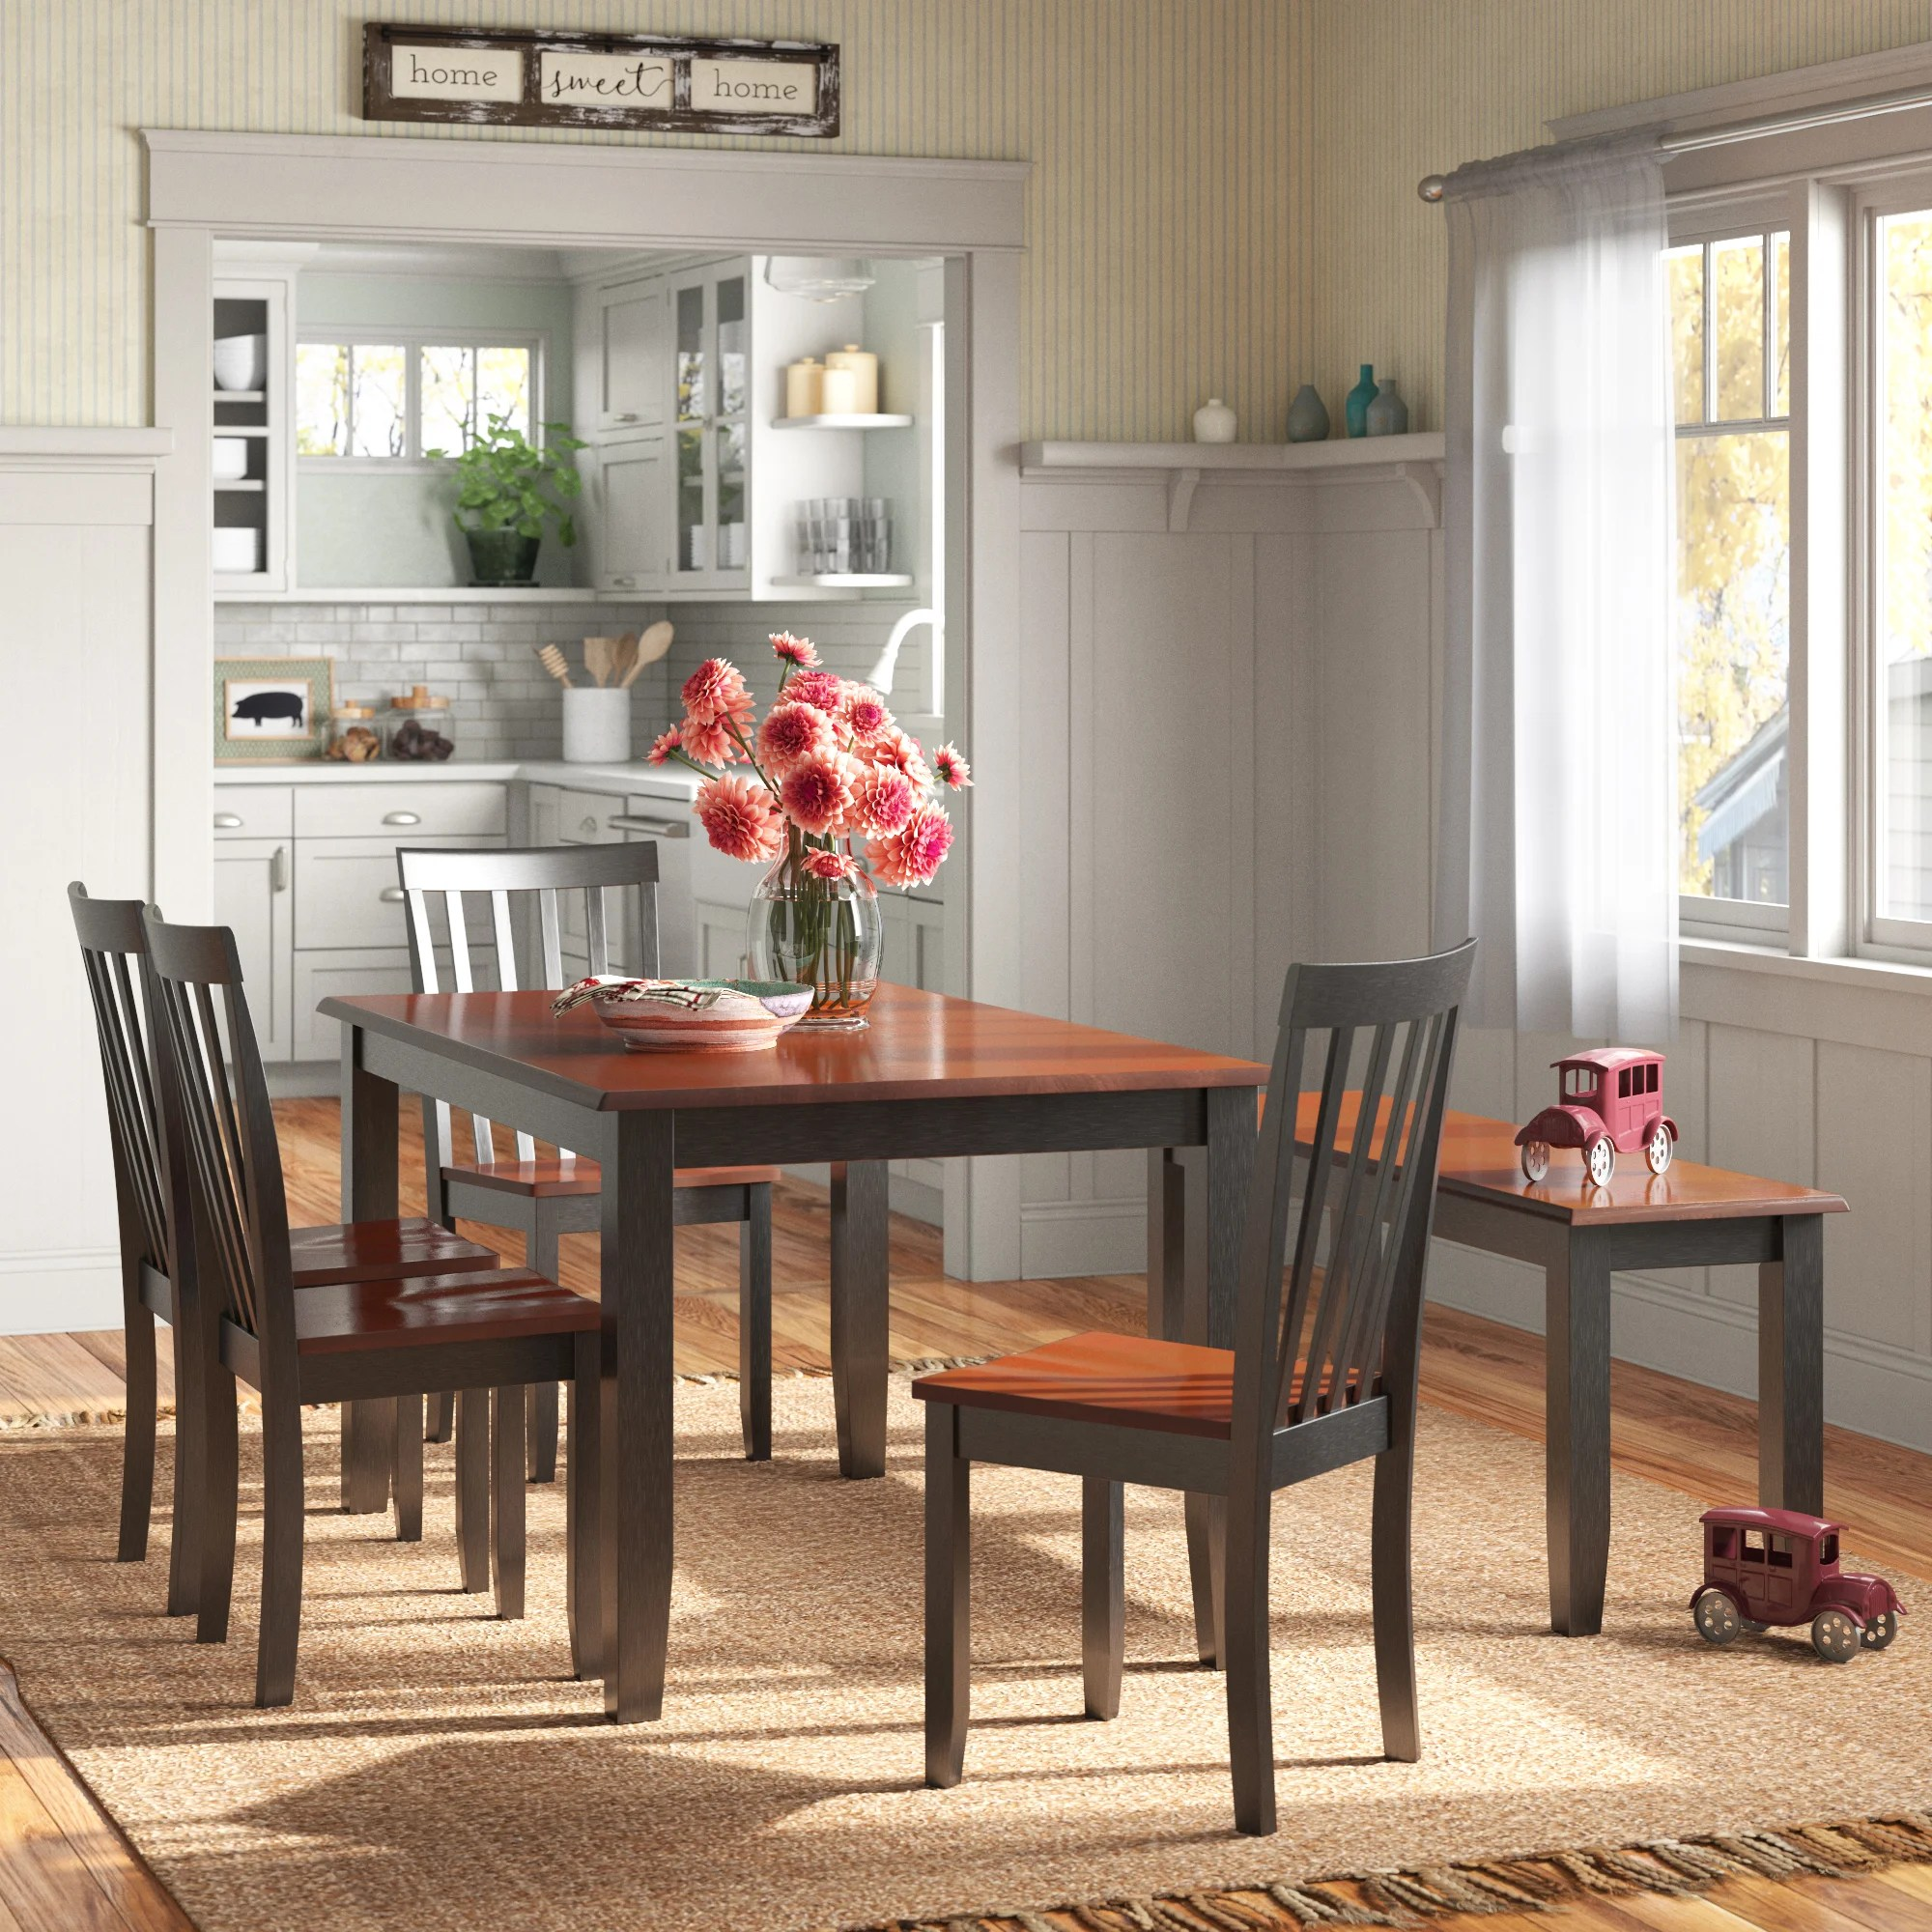 Bench Kitchen Dining Room Sets Free Shipping Over 35 Wayfair